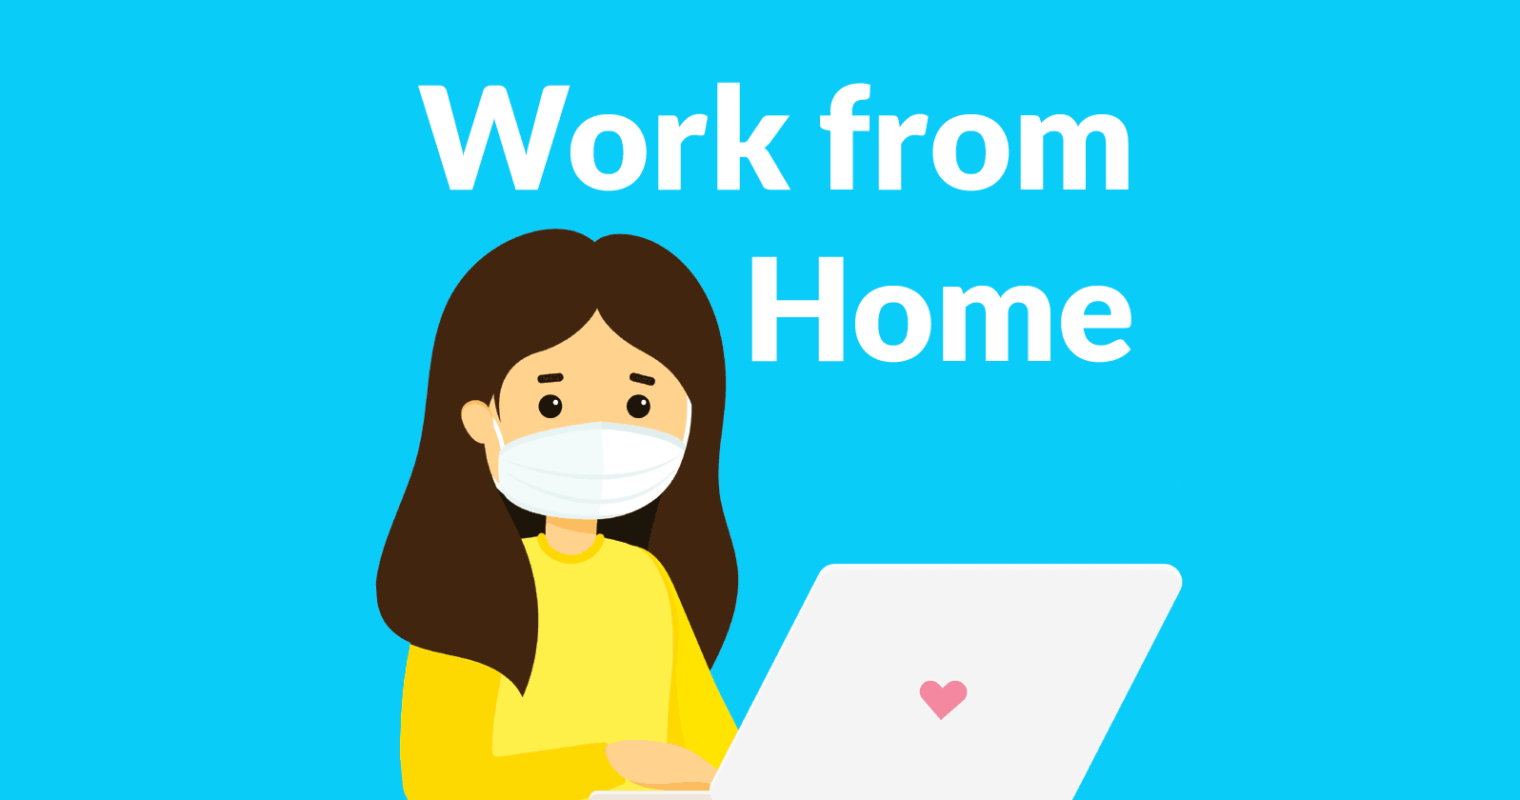 Work from Home will be the new normal